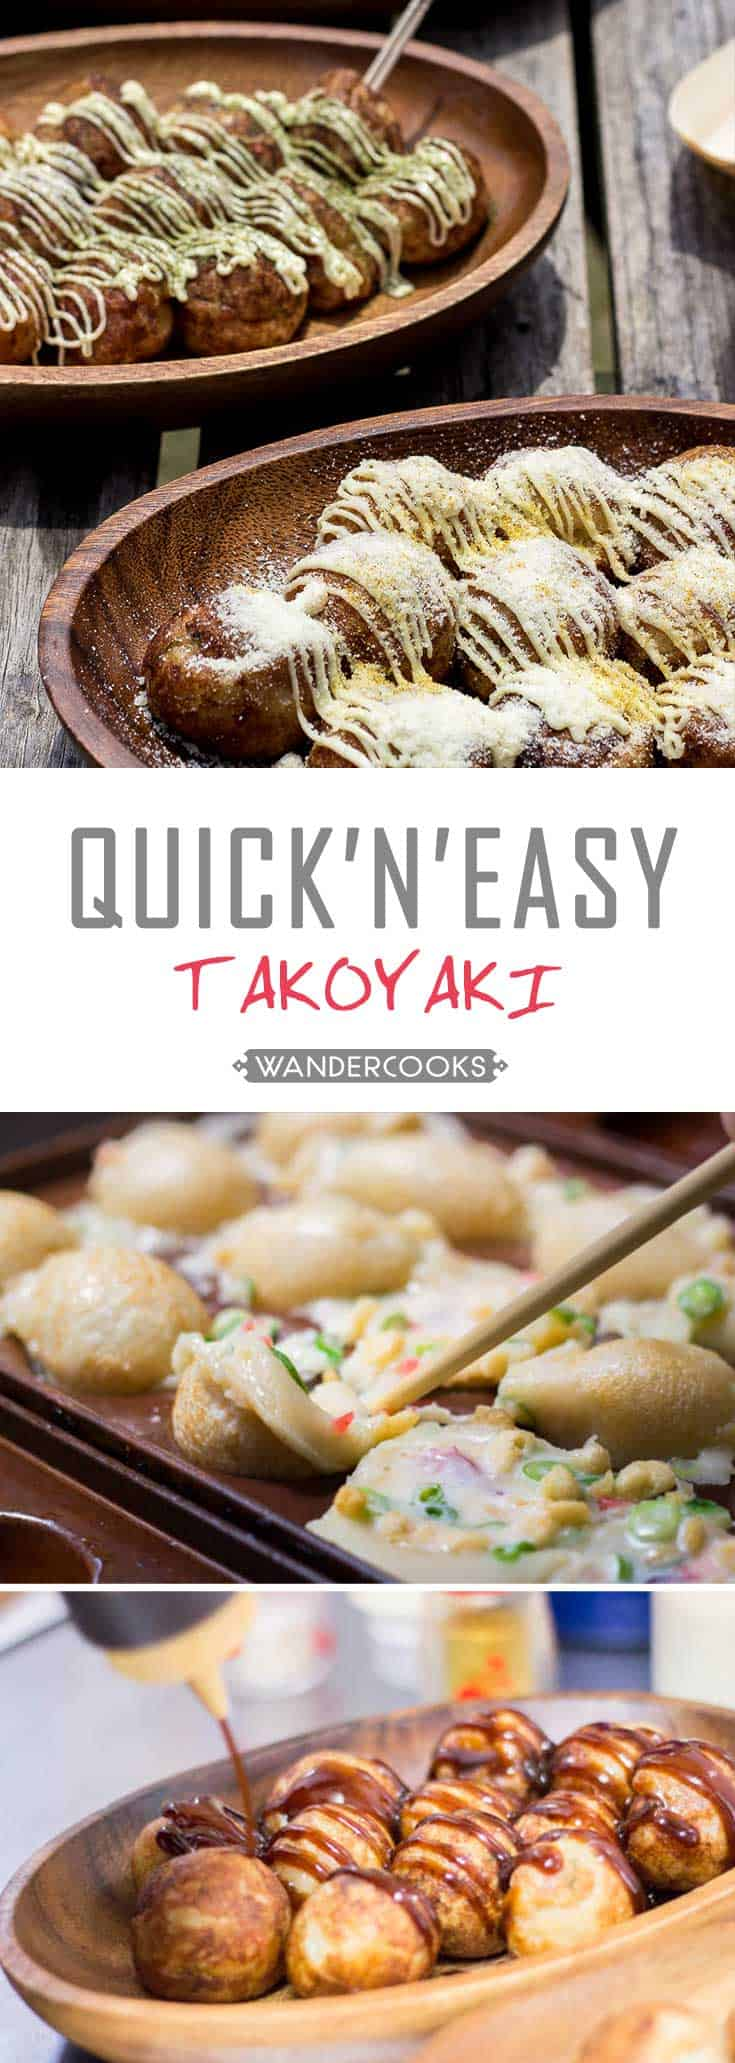 Quick Easy Makeup Tips Ideas For Work: Quick And Easy Takoyaki